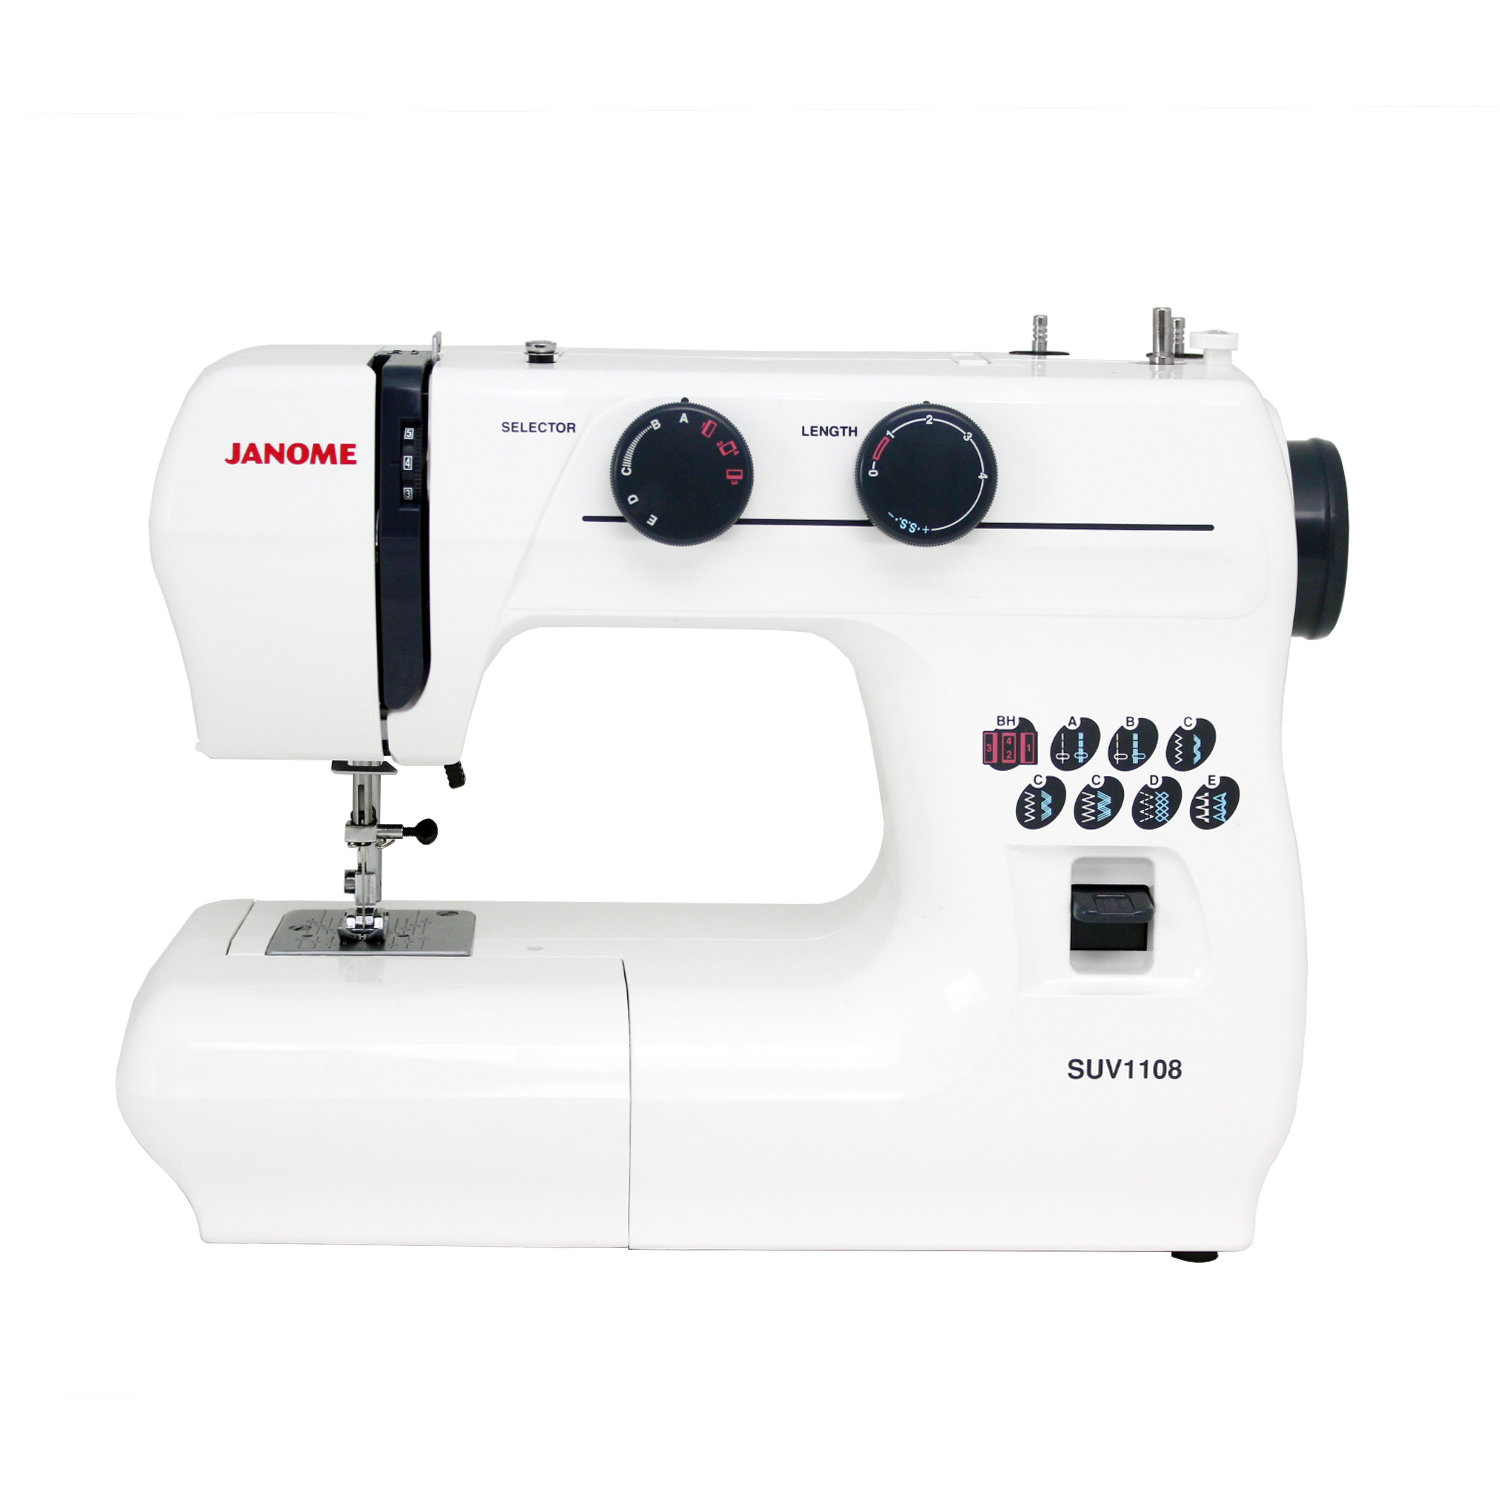 Janome SUV1108 Sewing Machine